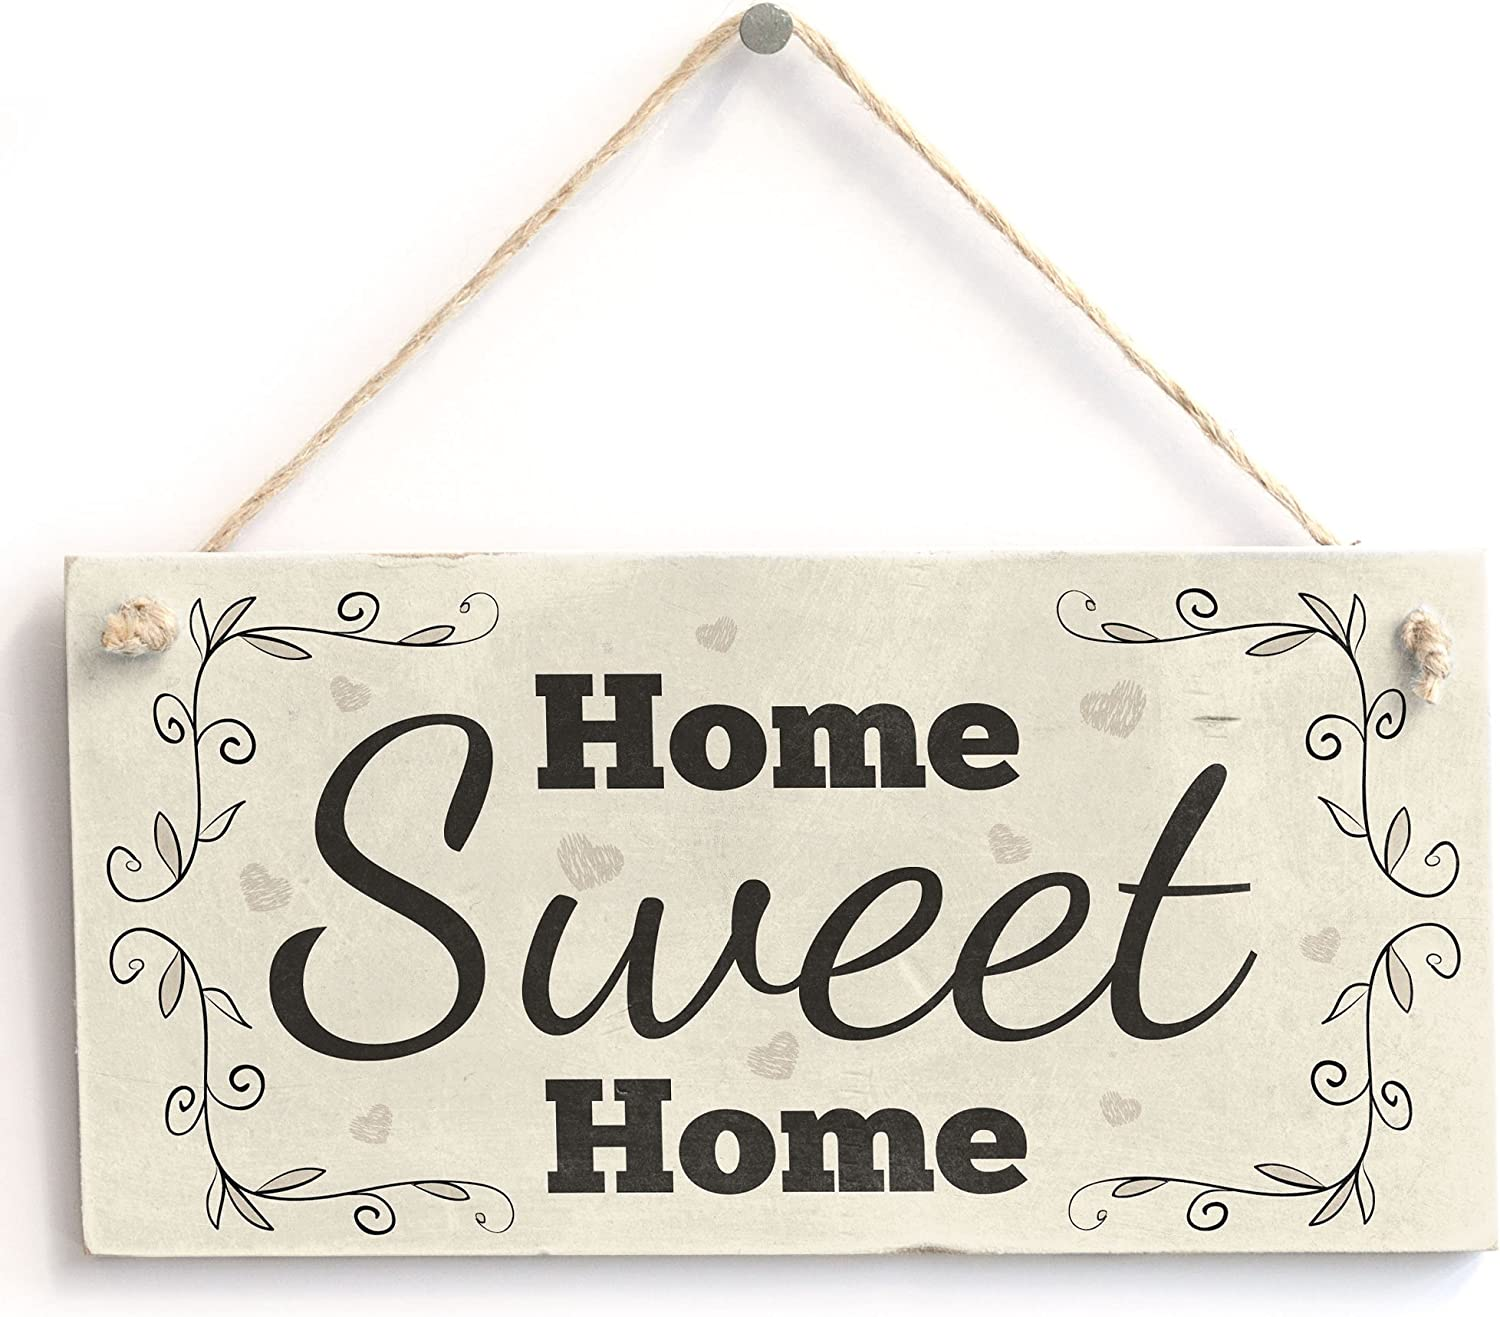 Home Sweet Home - Handmade Shabby Chic PVC Sign/Plaque